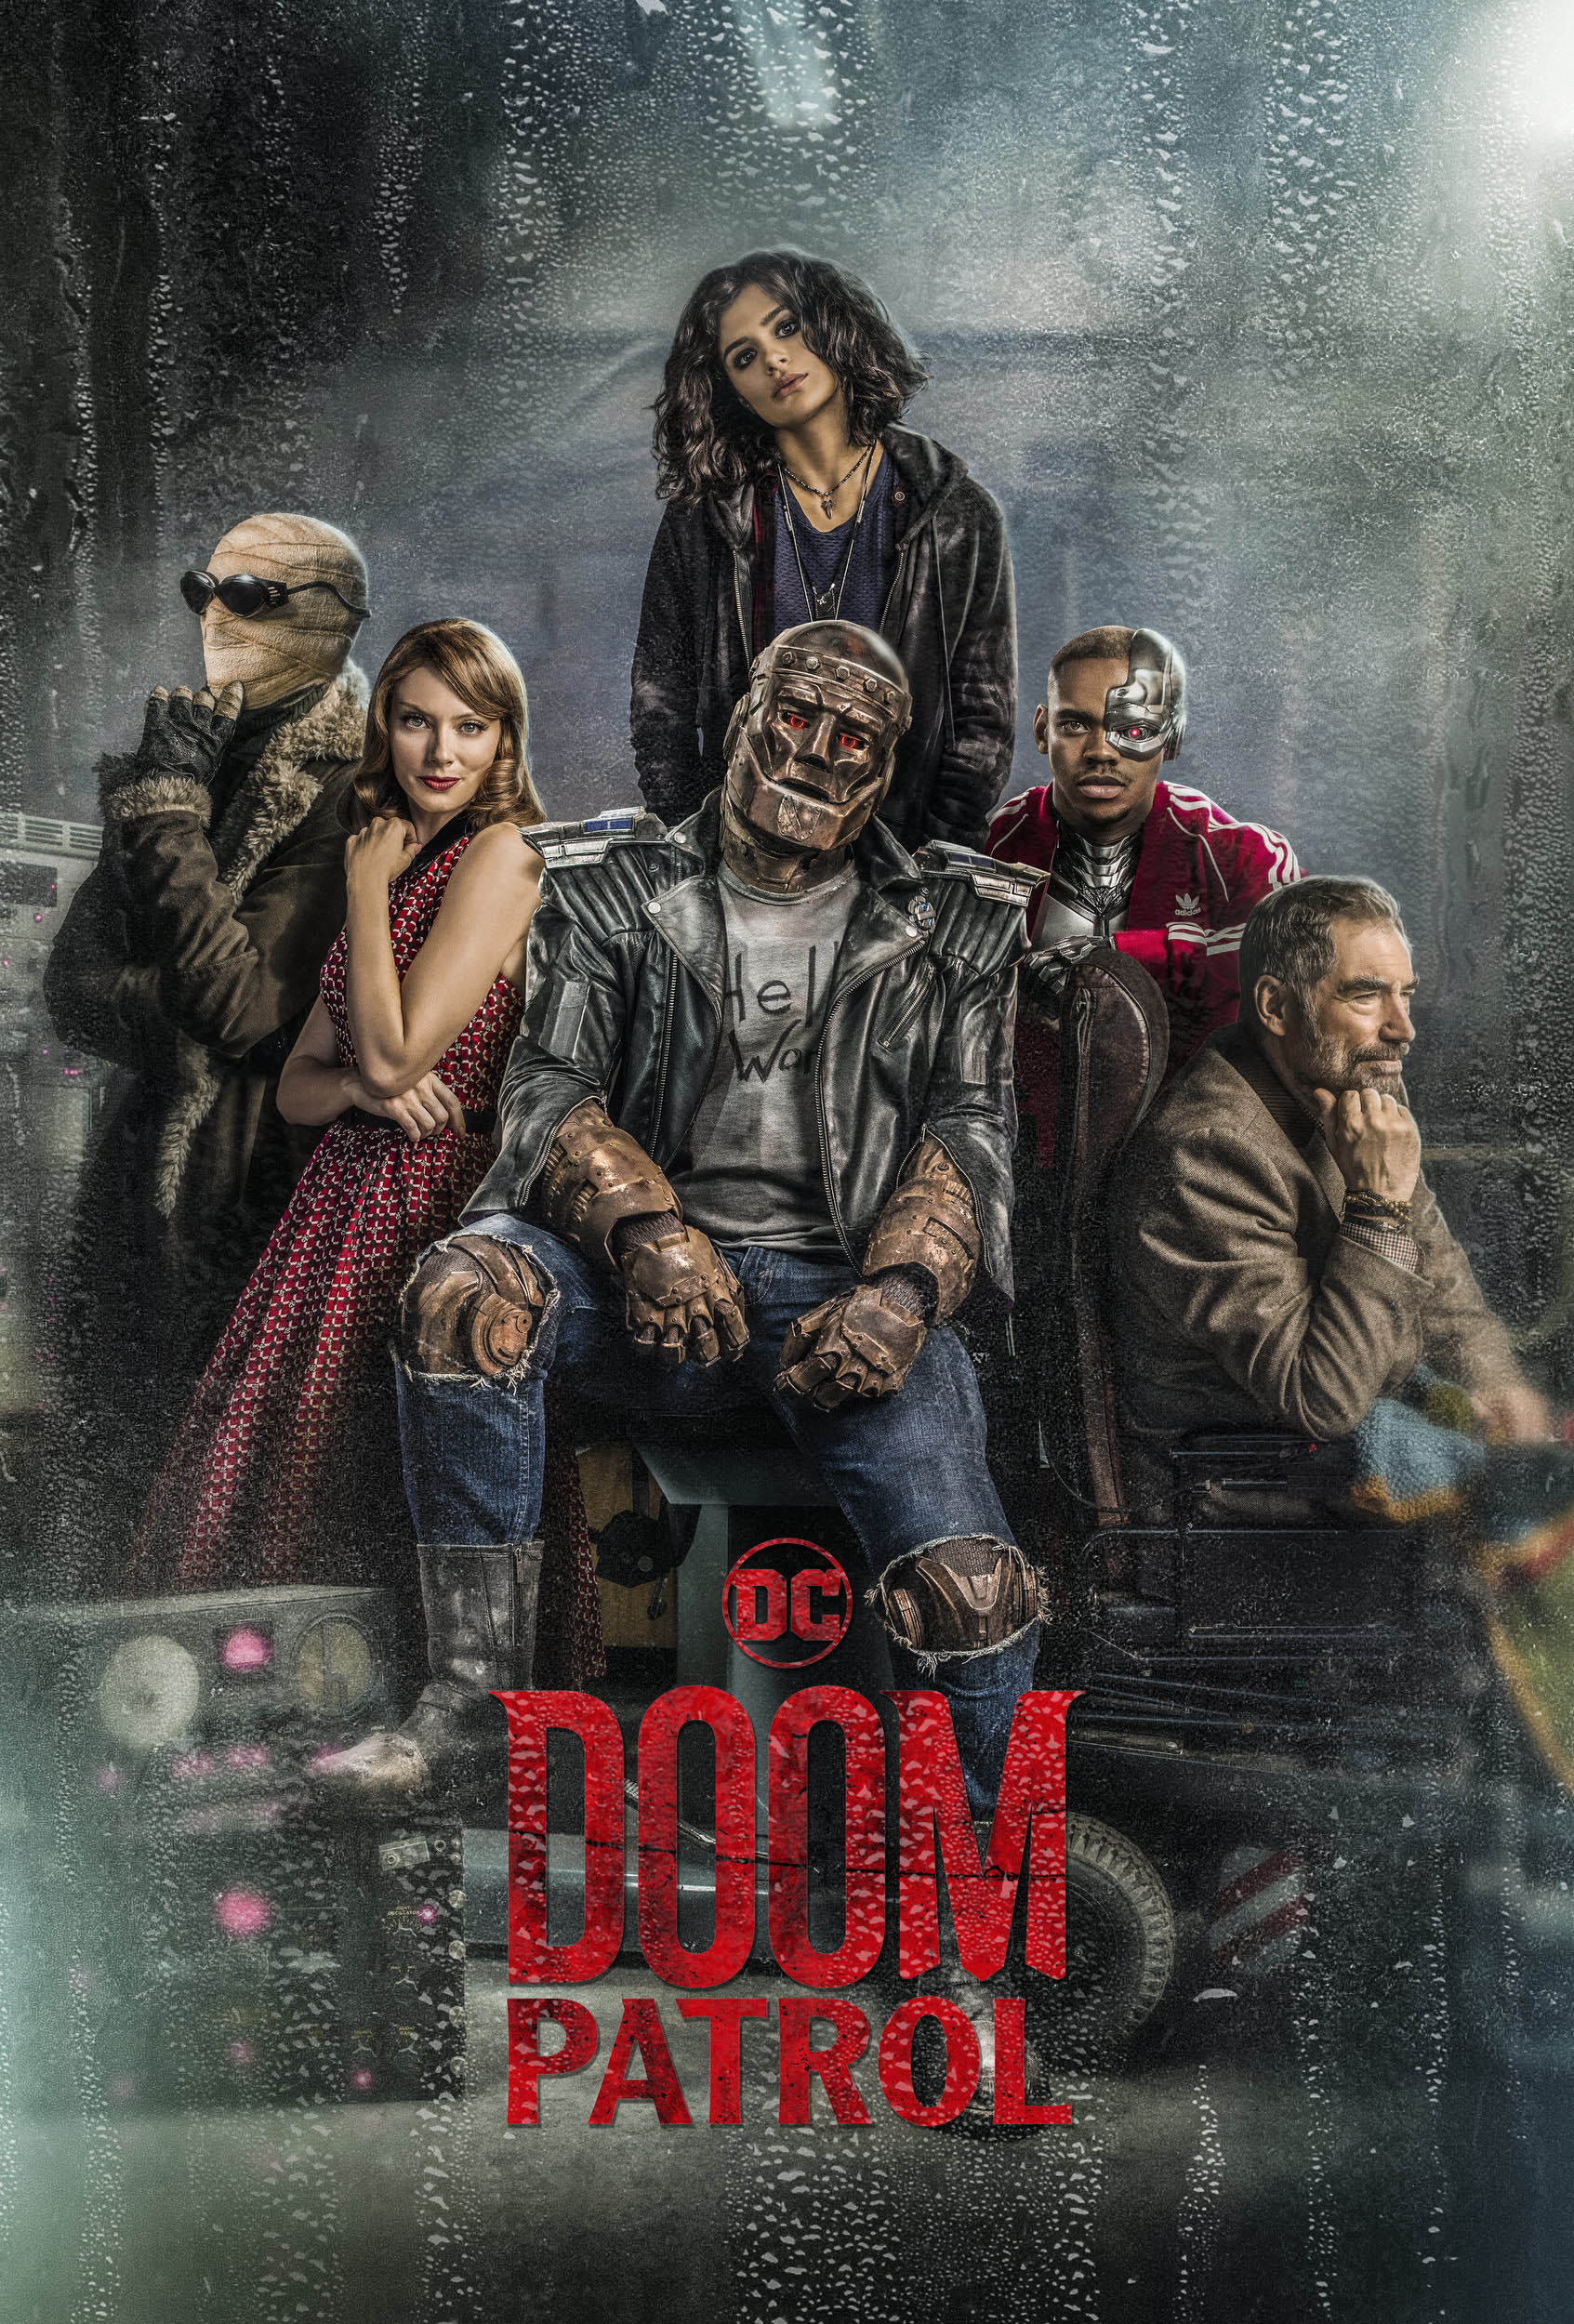 doom patrol season 2 movie poster